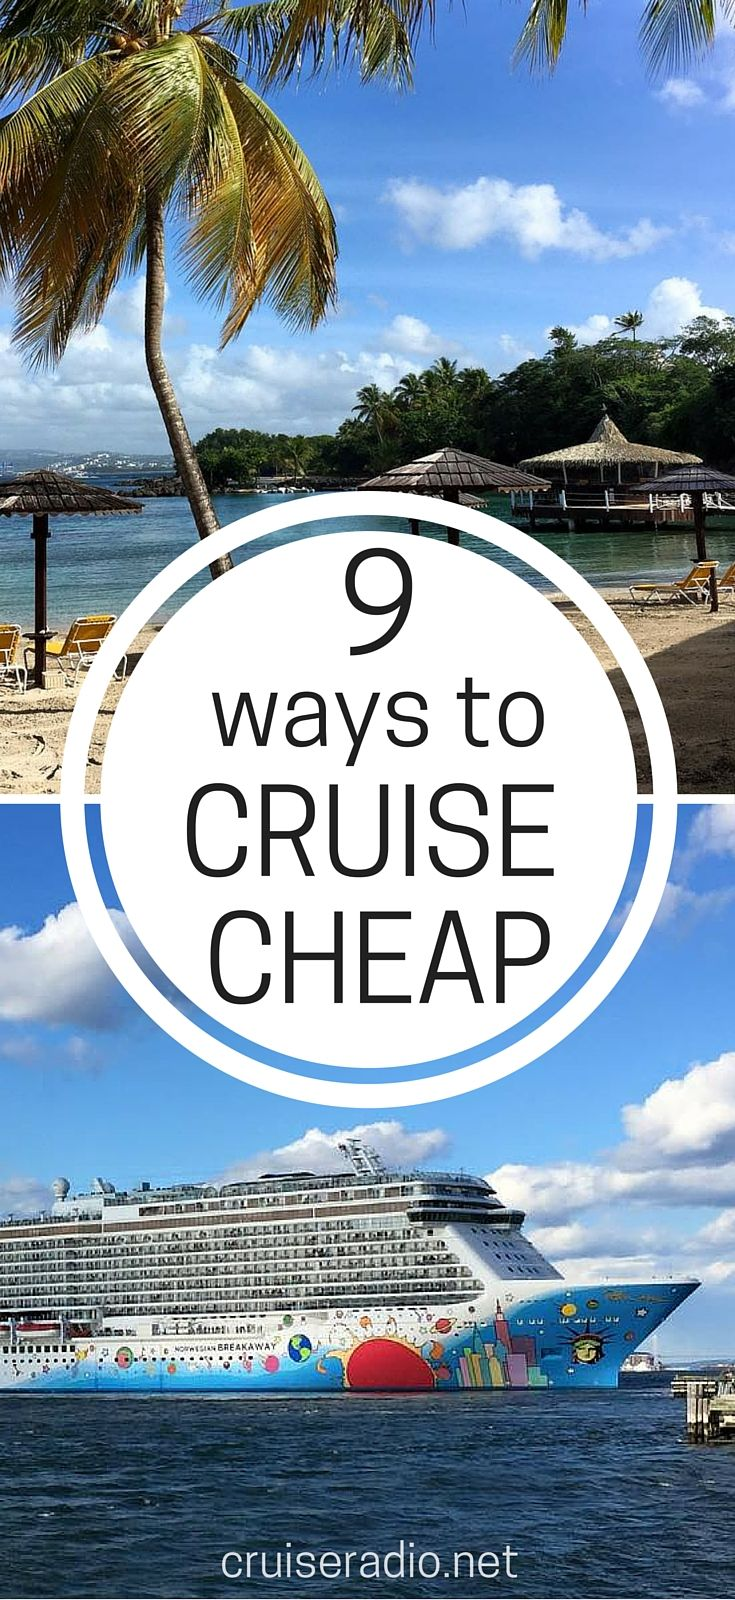 Here are 9 ways to cruise cheap on your next vacation.